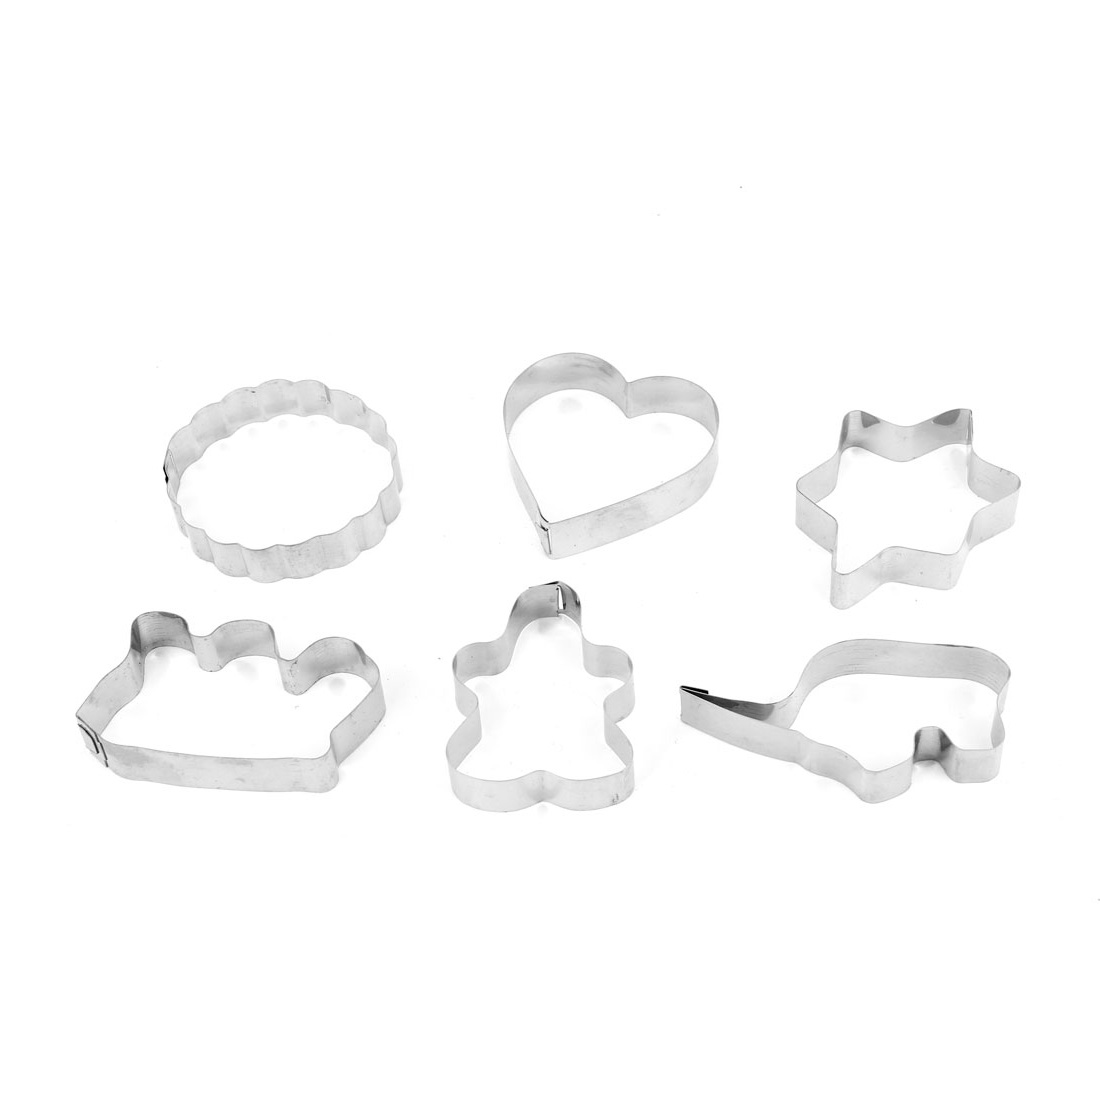 6 Pcs Home DIY Cookie Biscuit Baking Flower Heart Shape Metal Cutter Mold